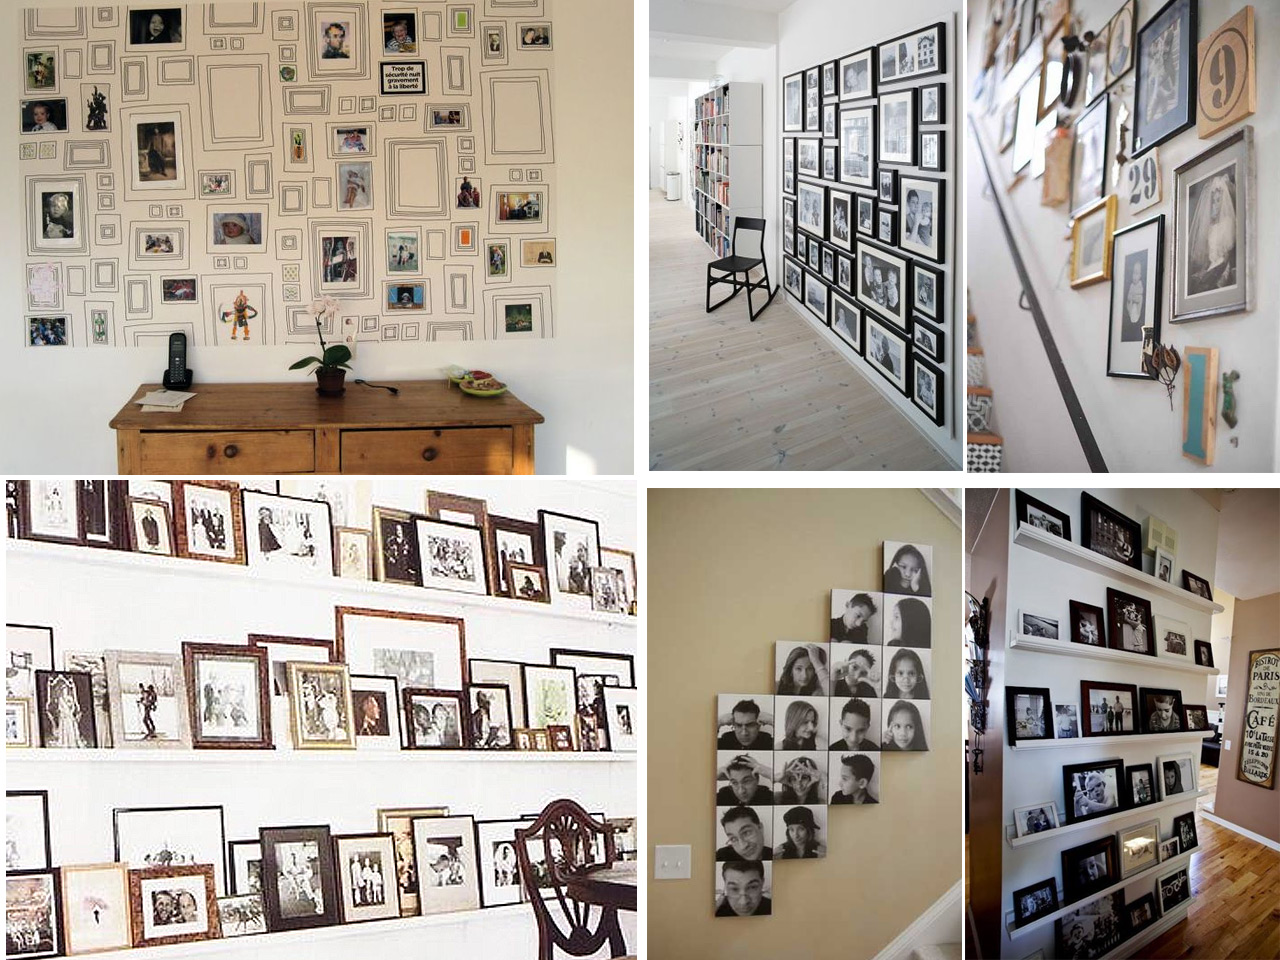 60 brillantes ideas para decorar con fotos familiares for Formas para decorar una casa